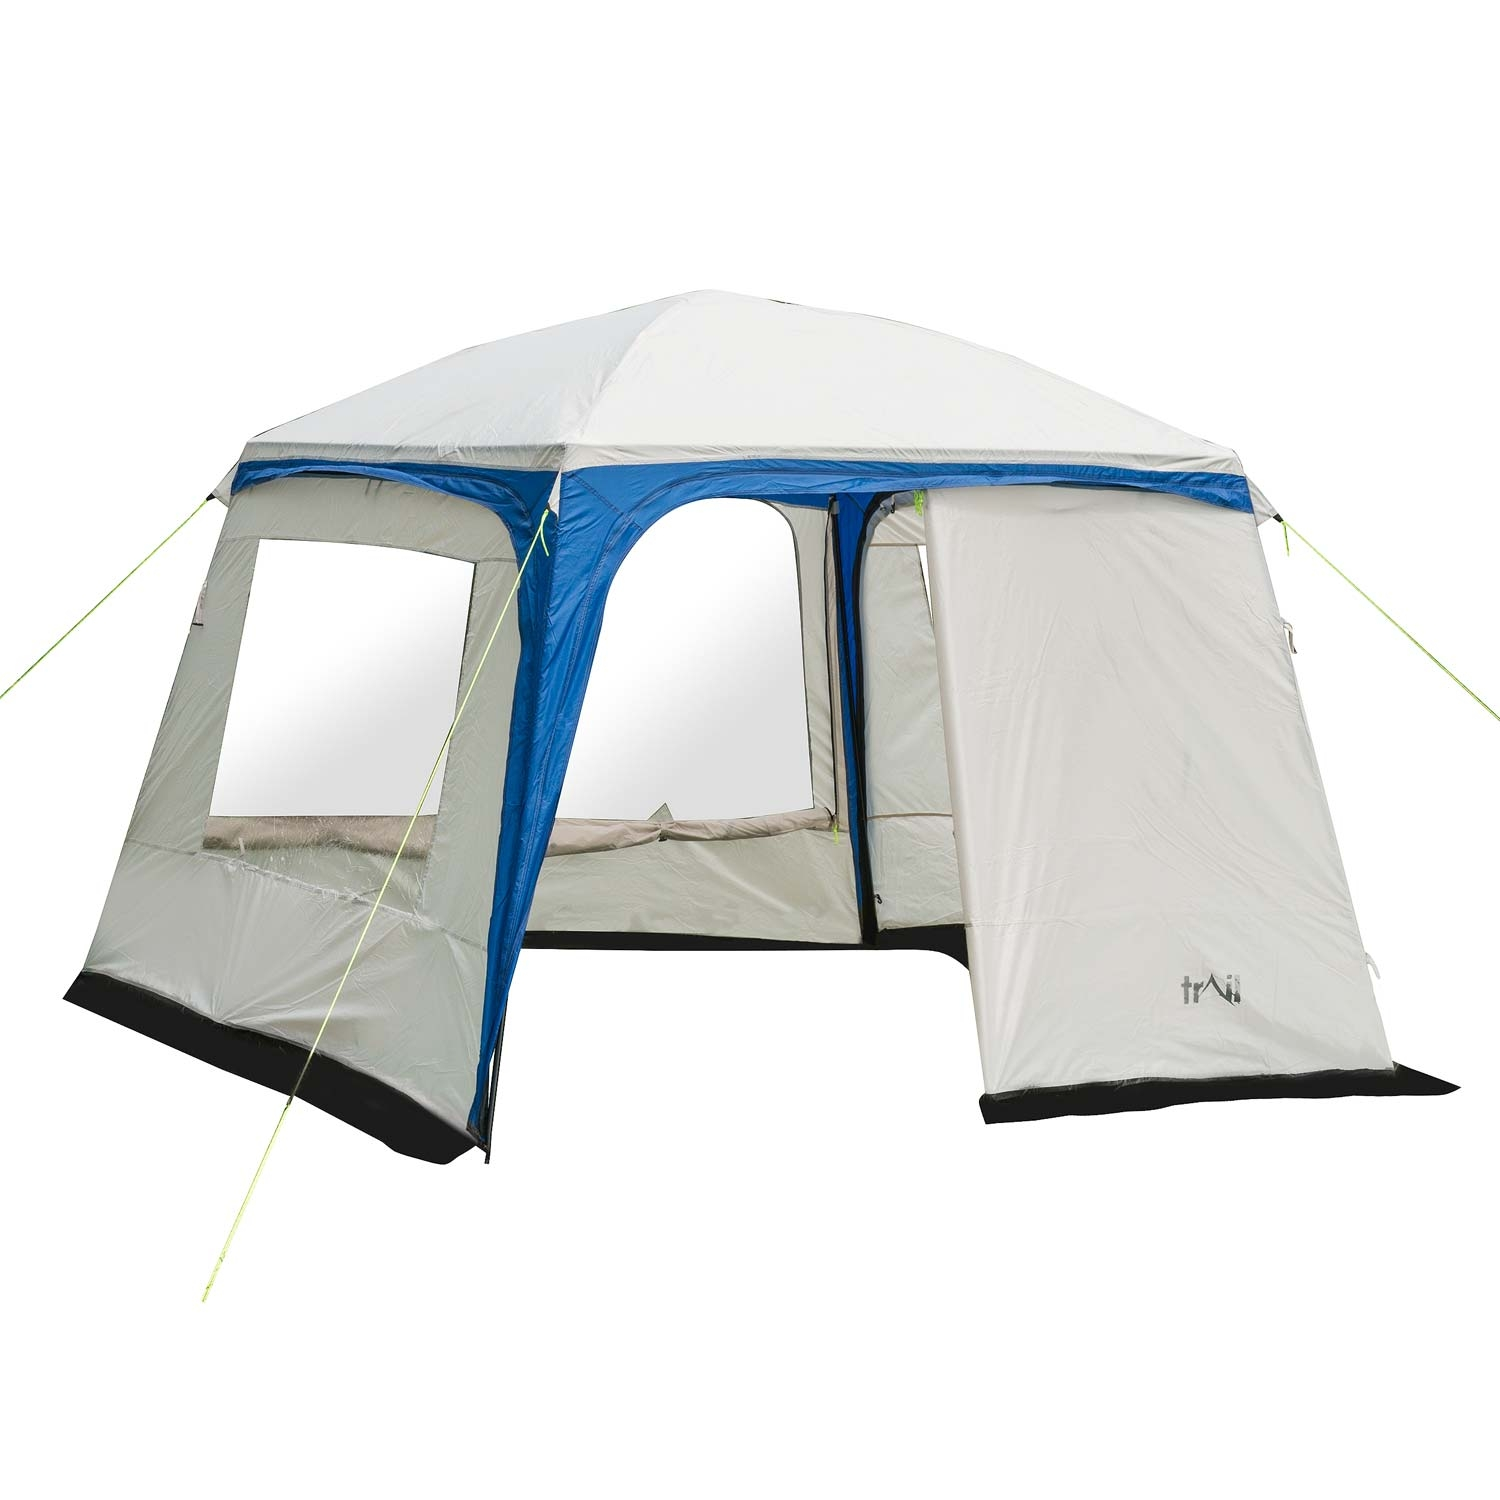 Trail Deluxe Gazebo With Sides 3m X 3m - Blue